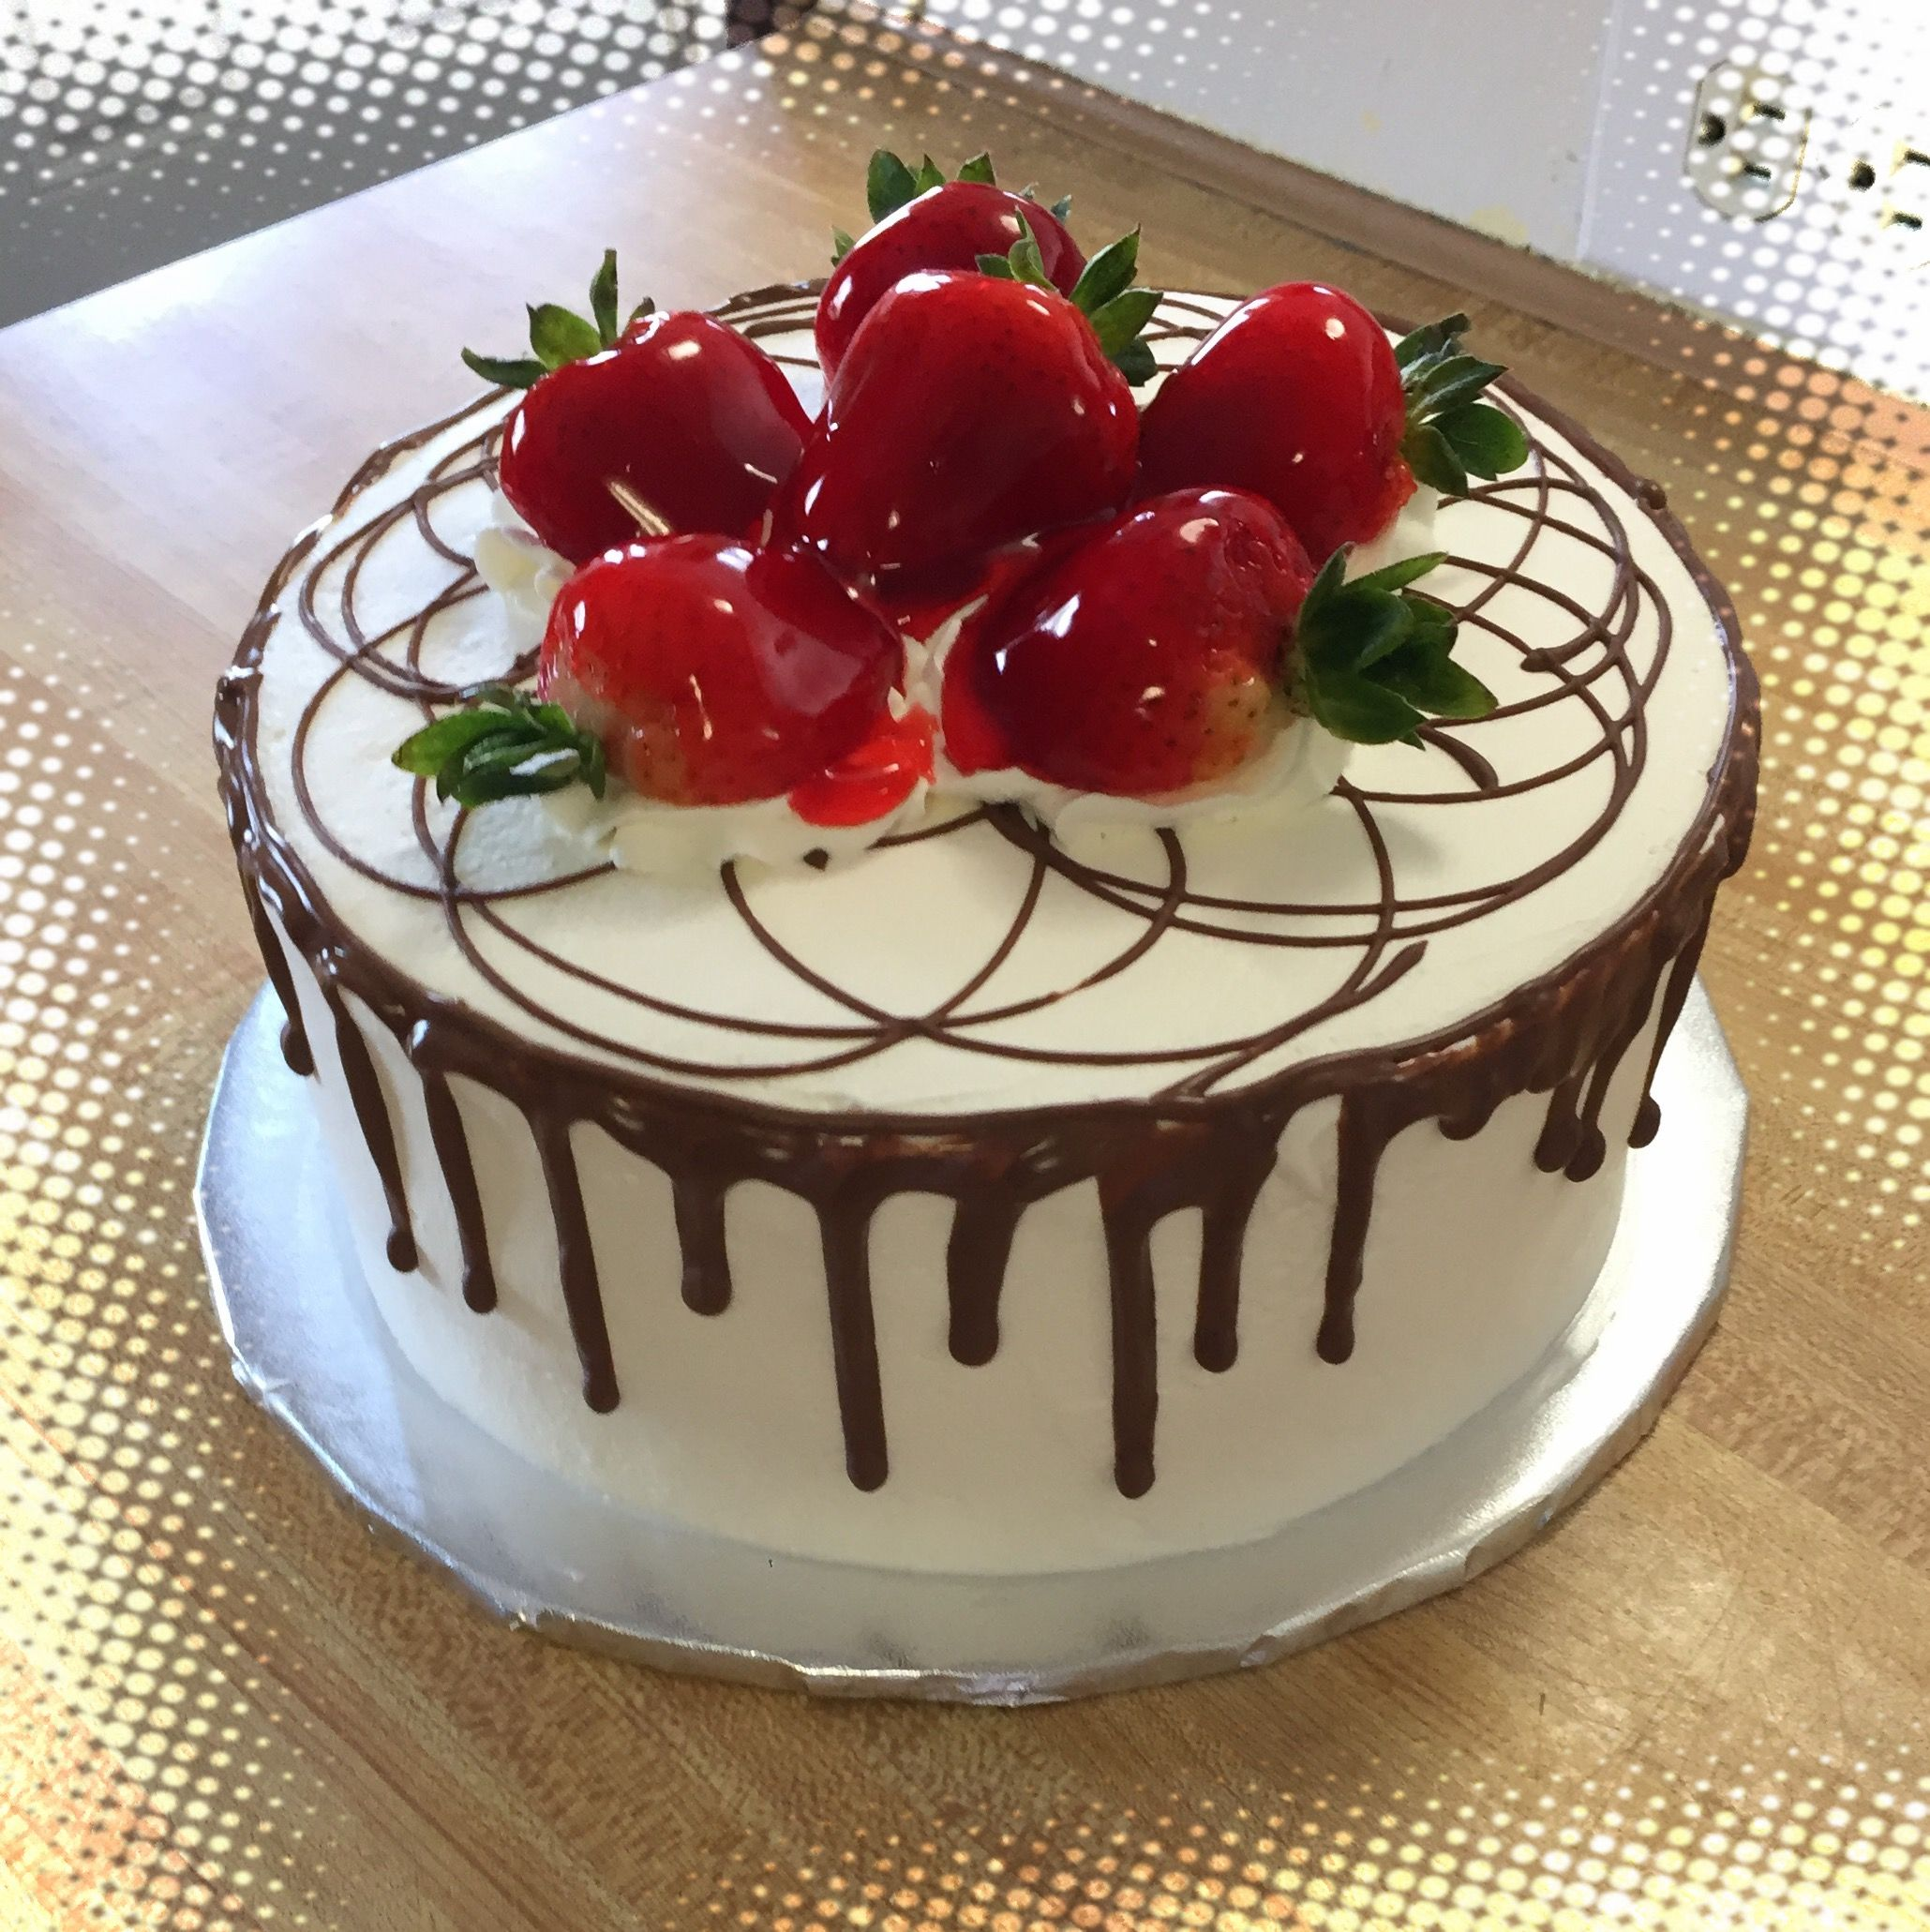 Tres Leches Cake Garnished With Strawberries And Drizzled With